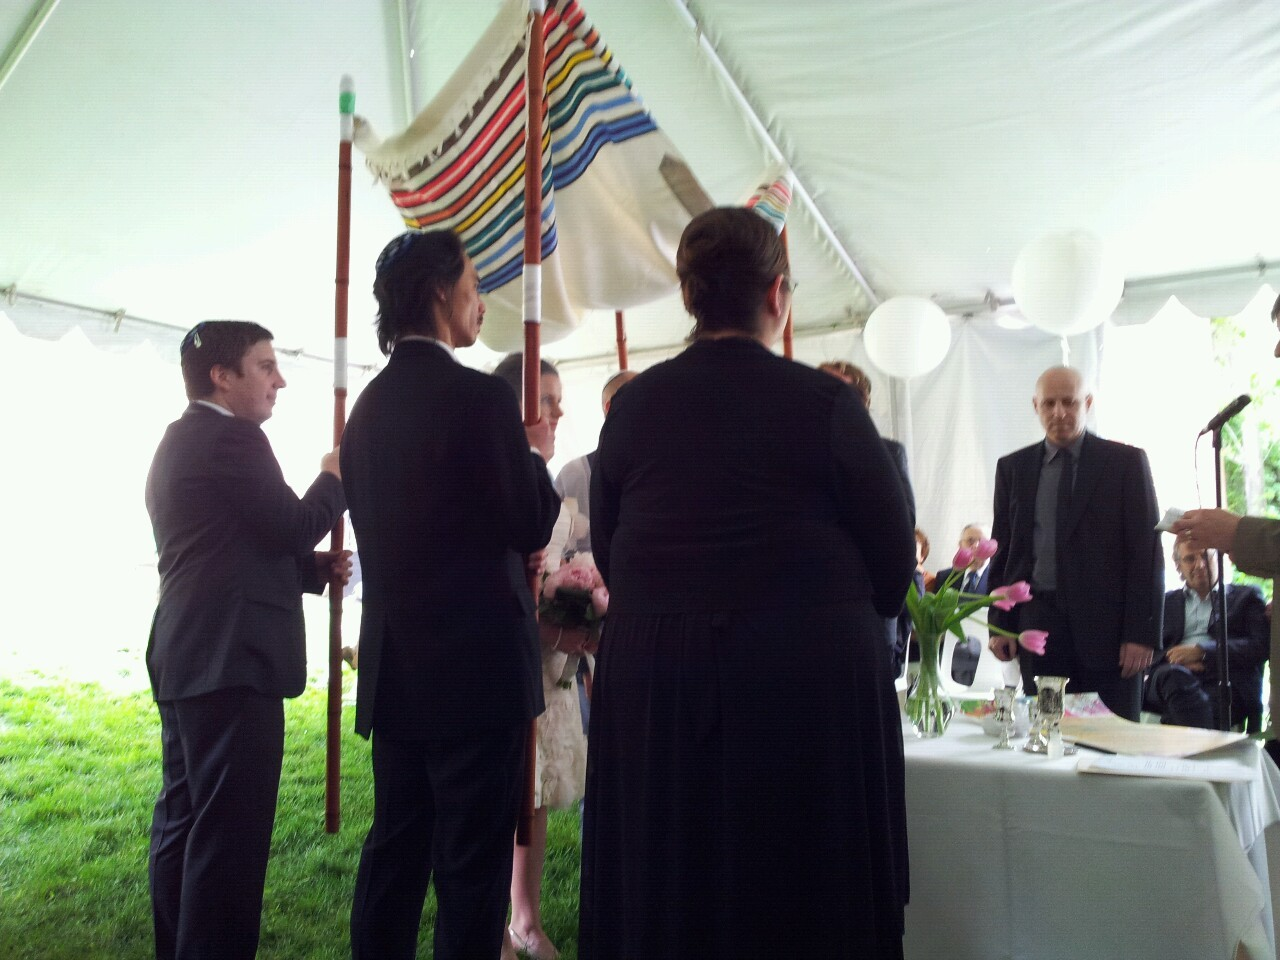 Mazel tov! Gee, standing there the whole time holding up the chuppah really makes your back tense.